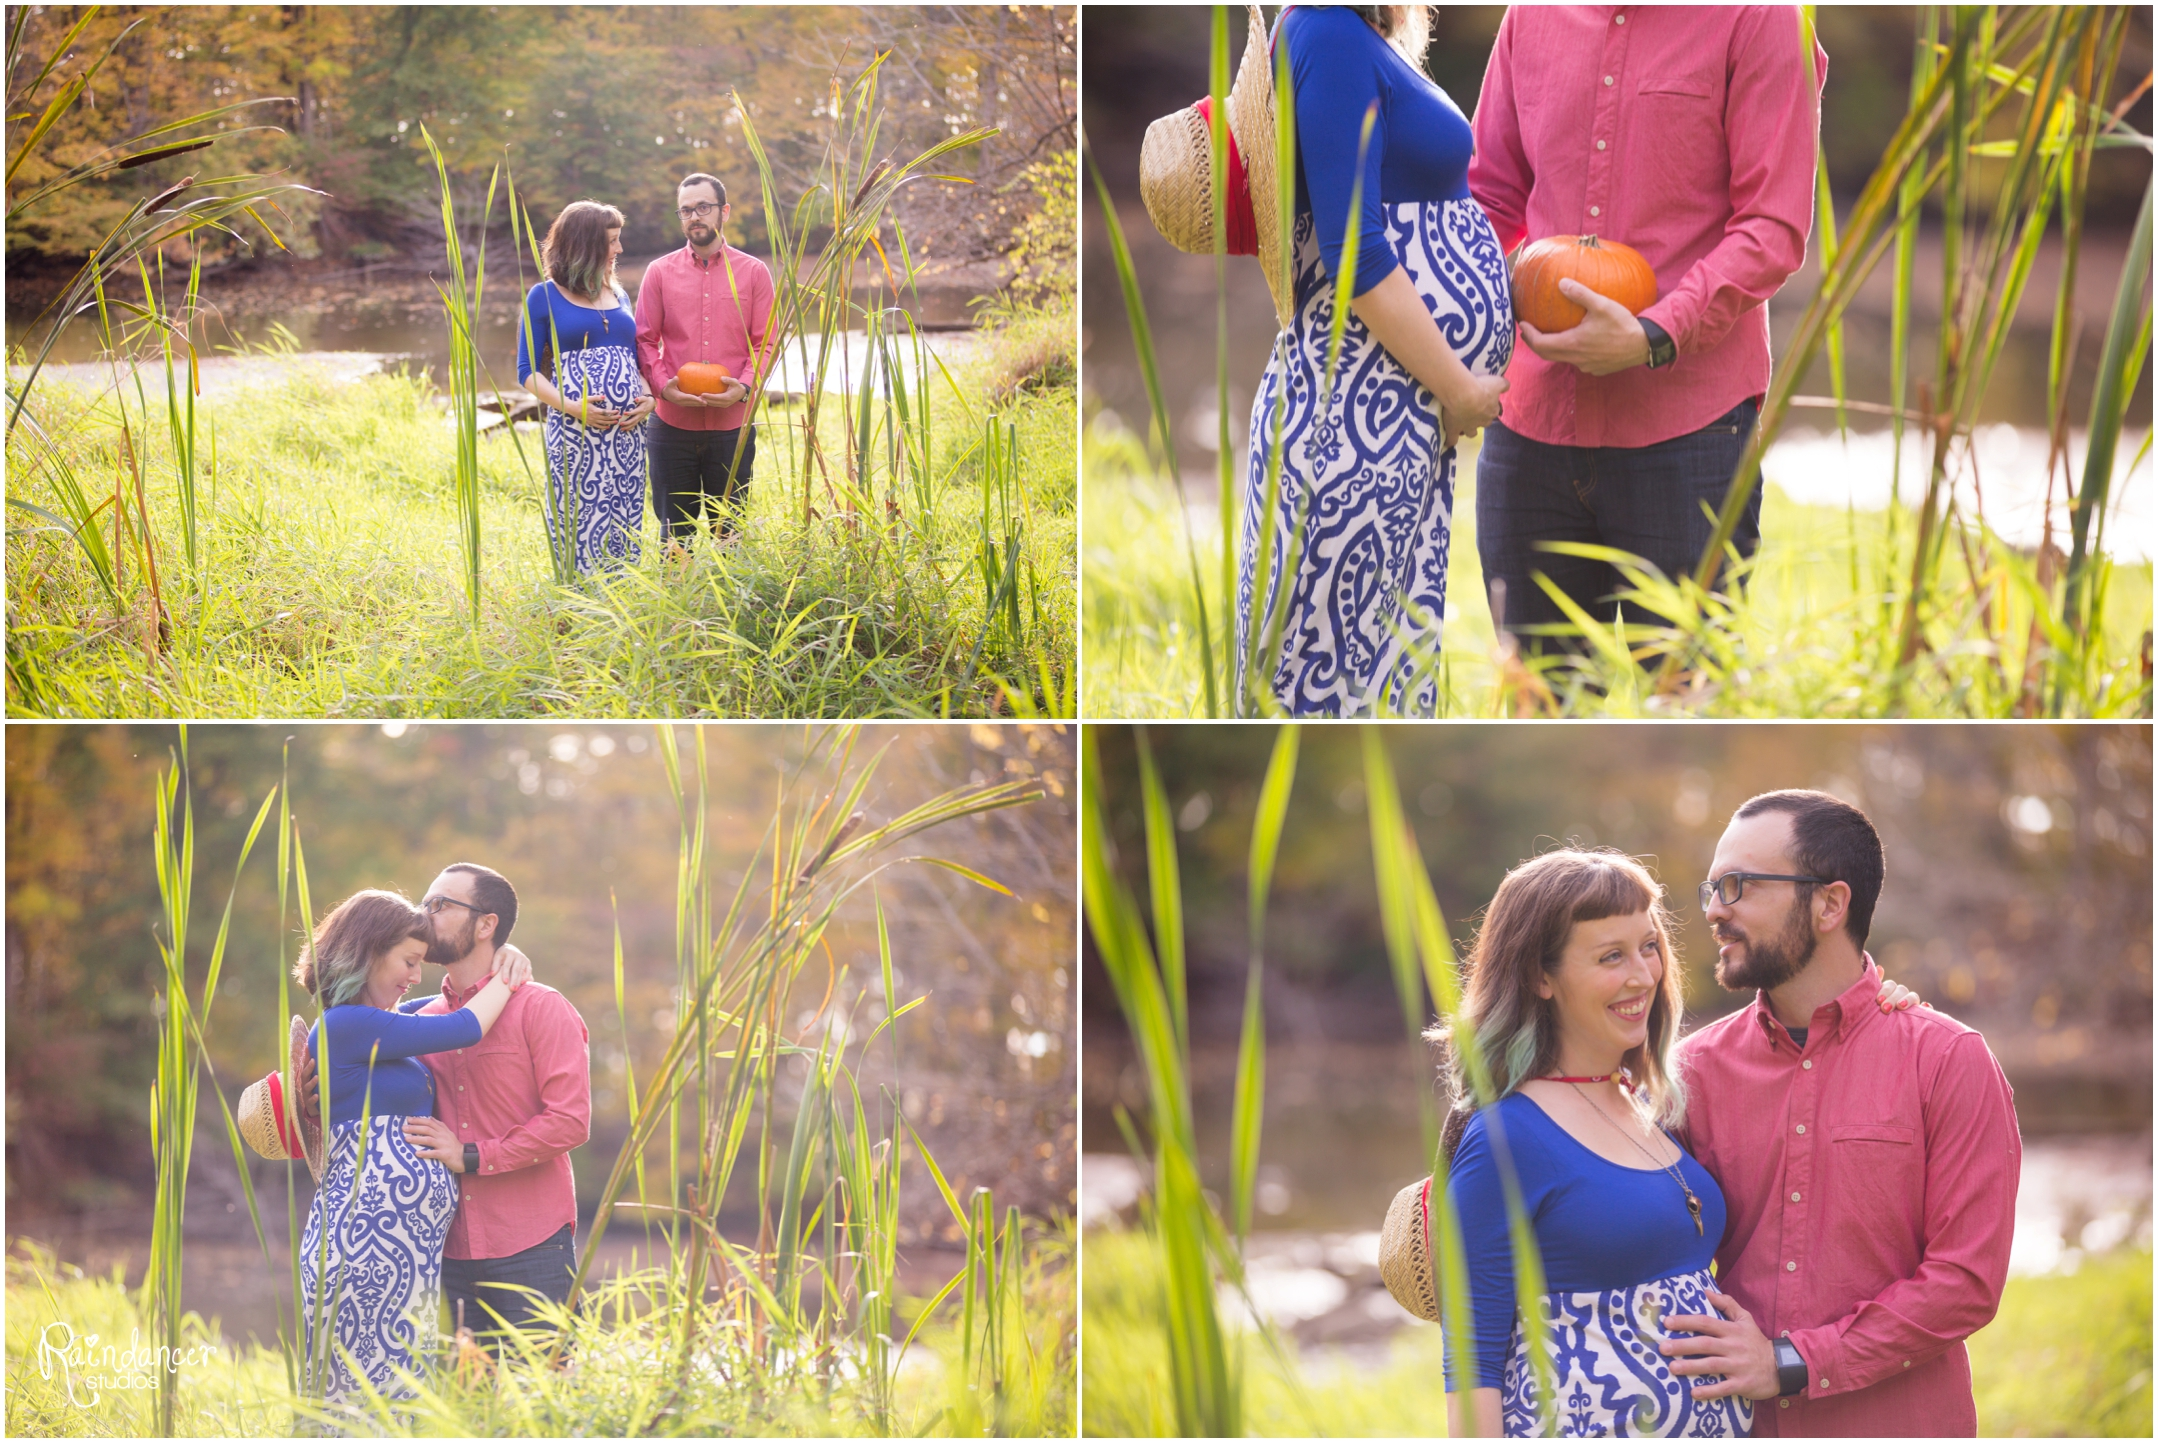 Indianapolis Maternity photographer, Indy maternity photographer, Indianapolis family photographer, Indy family photographer, Indy maternity photography, Indianapolis maternity photography